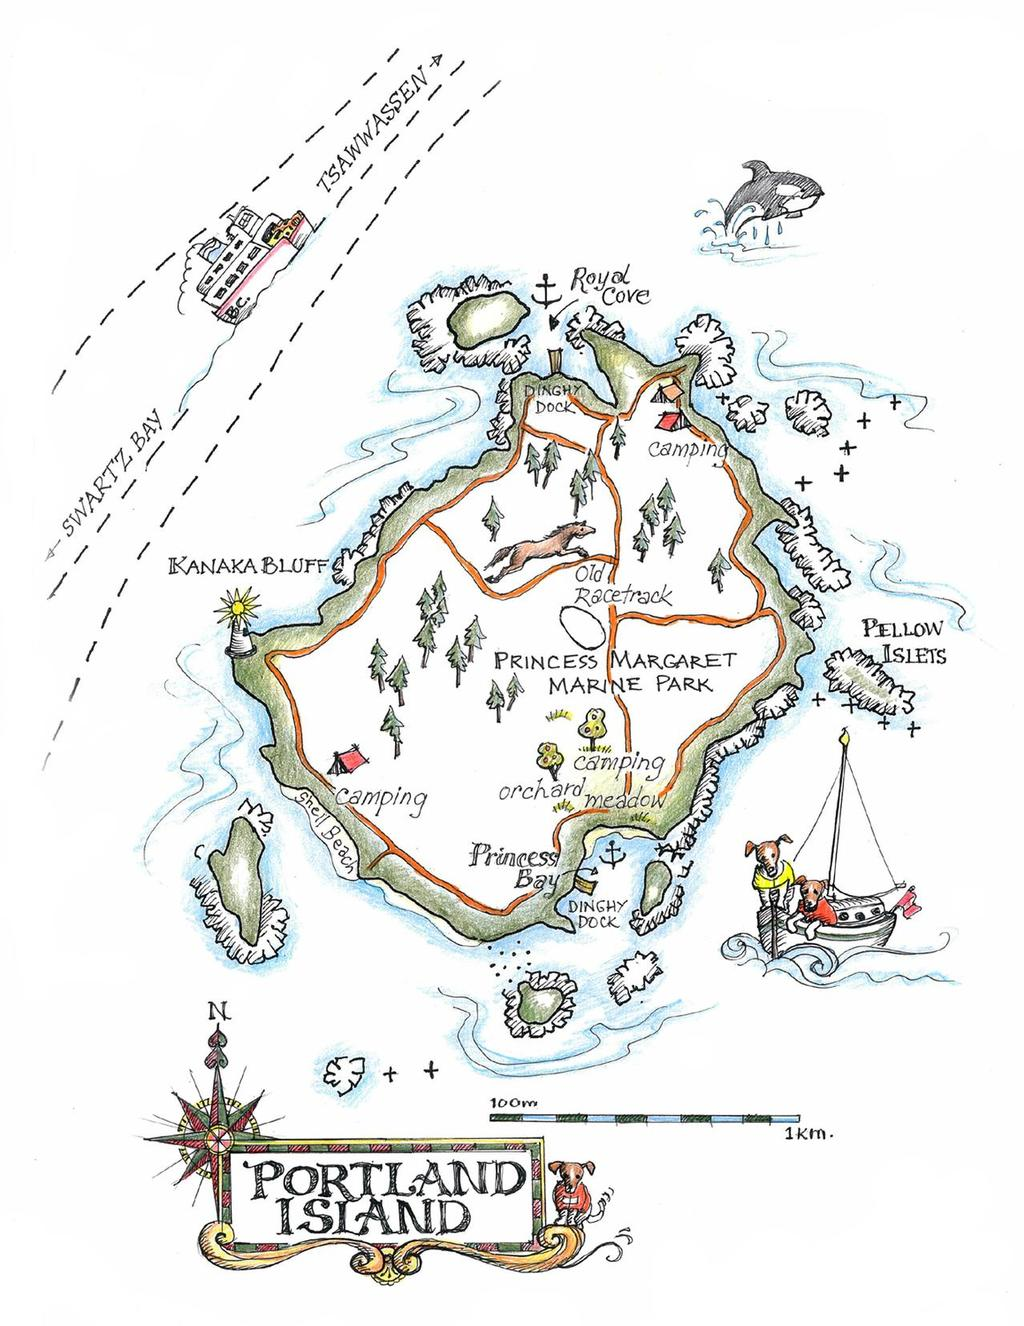 Another of the maps - this one of Portland Island - one of our favourite spots on the coast © Amanda Spottiswoode